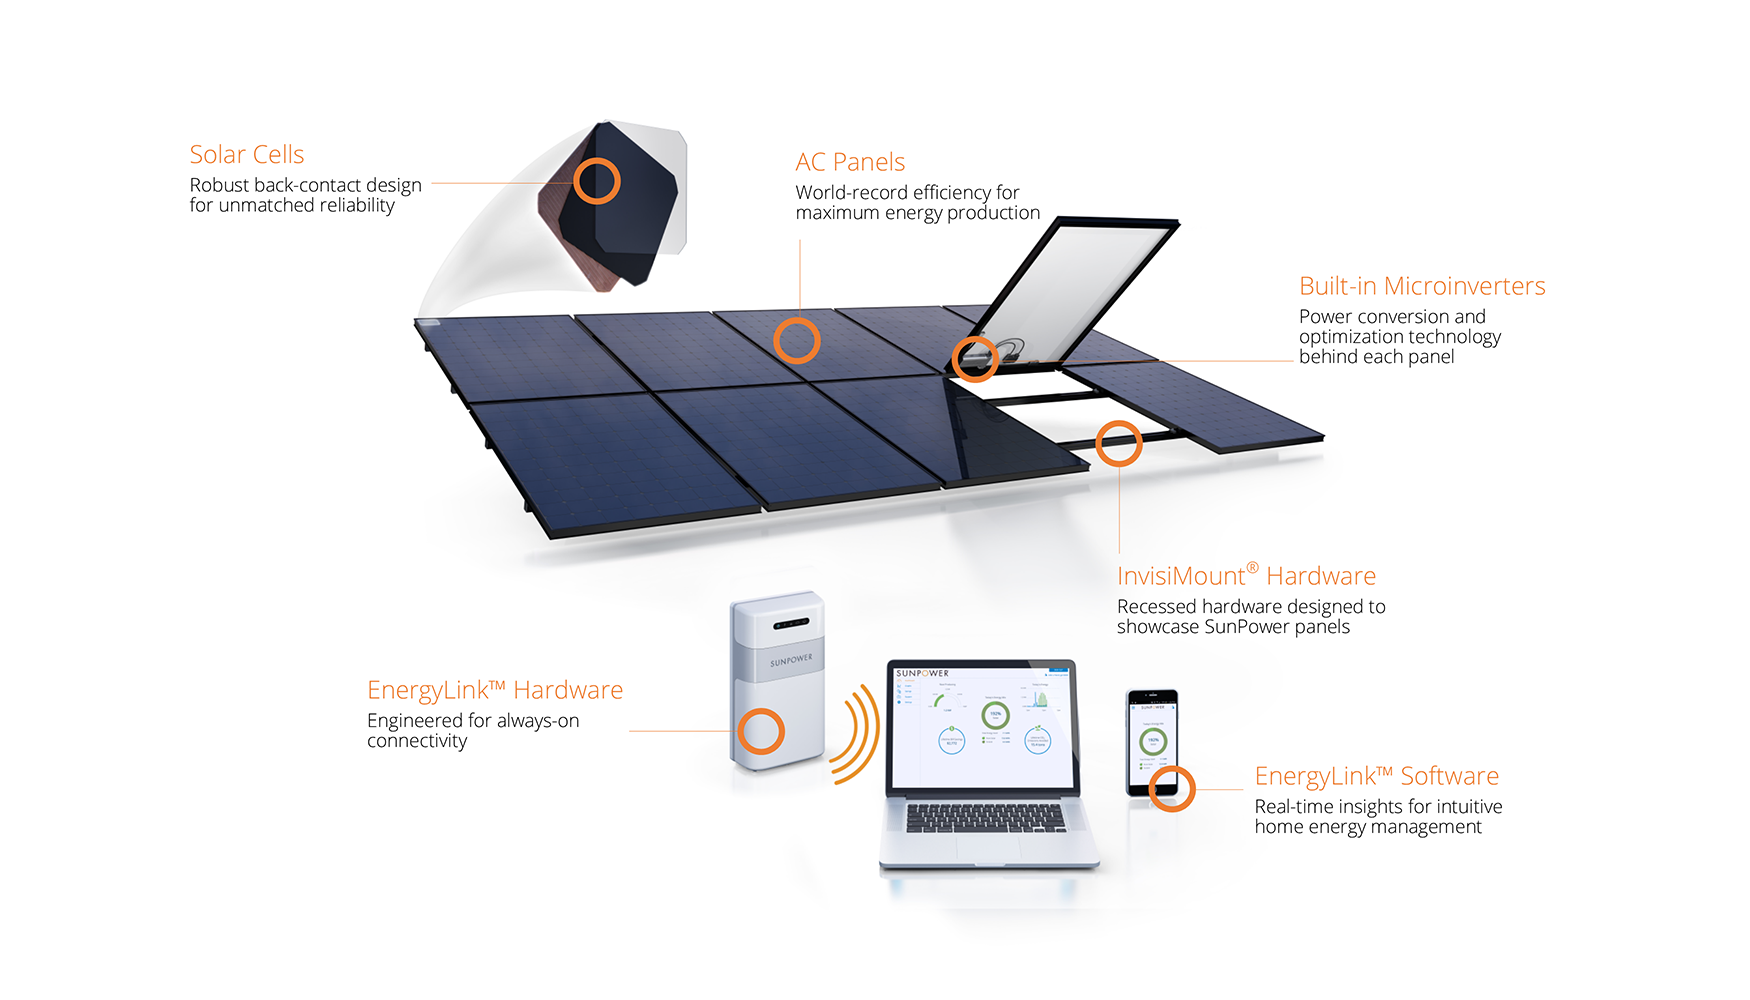 Astonishing Differences of SunPower vs the Competitors | SolarTech